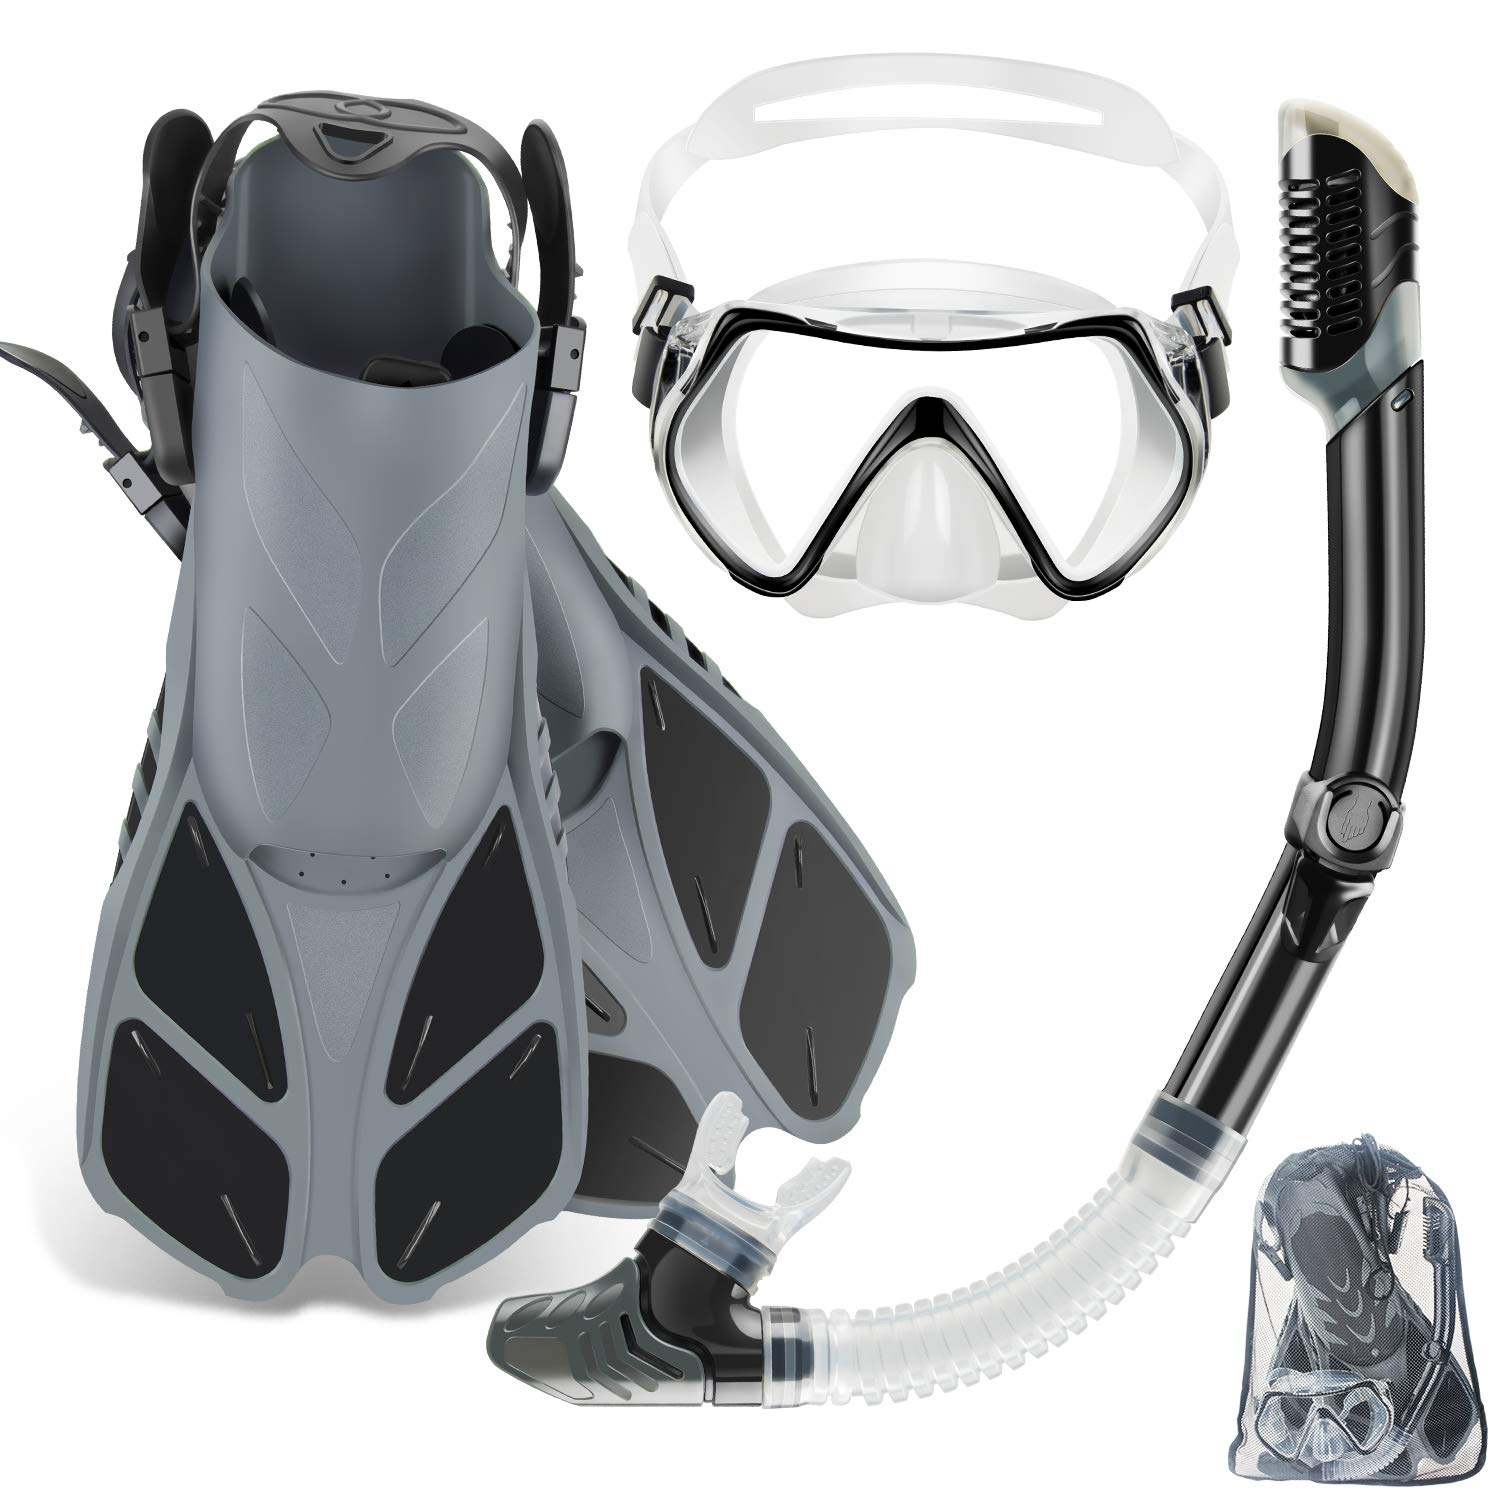 Dry Top Snorkel +Travel Bags Snorkel for Lap Swimming Panoramic View Diving Mask ZEEPORTE Mask Fin Snorkel Set with Adult Snorkeling Gear Trek Fin